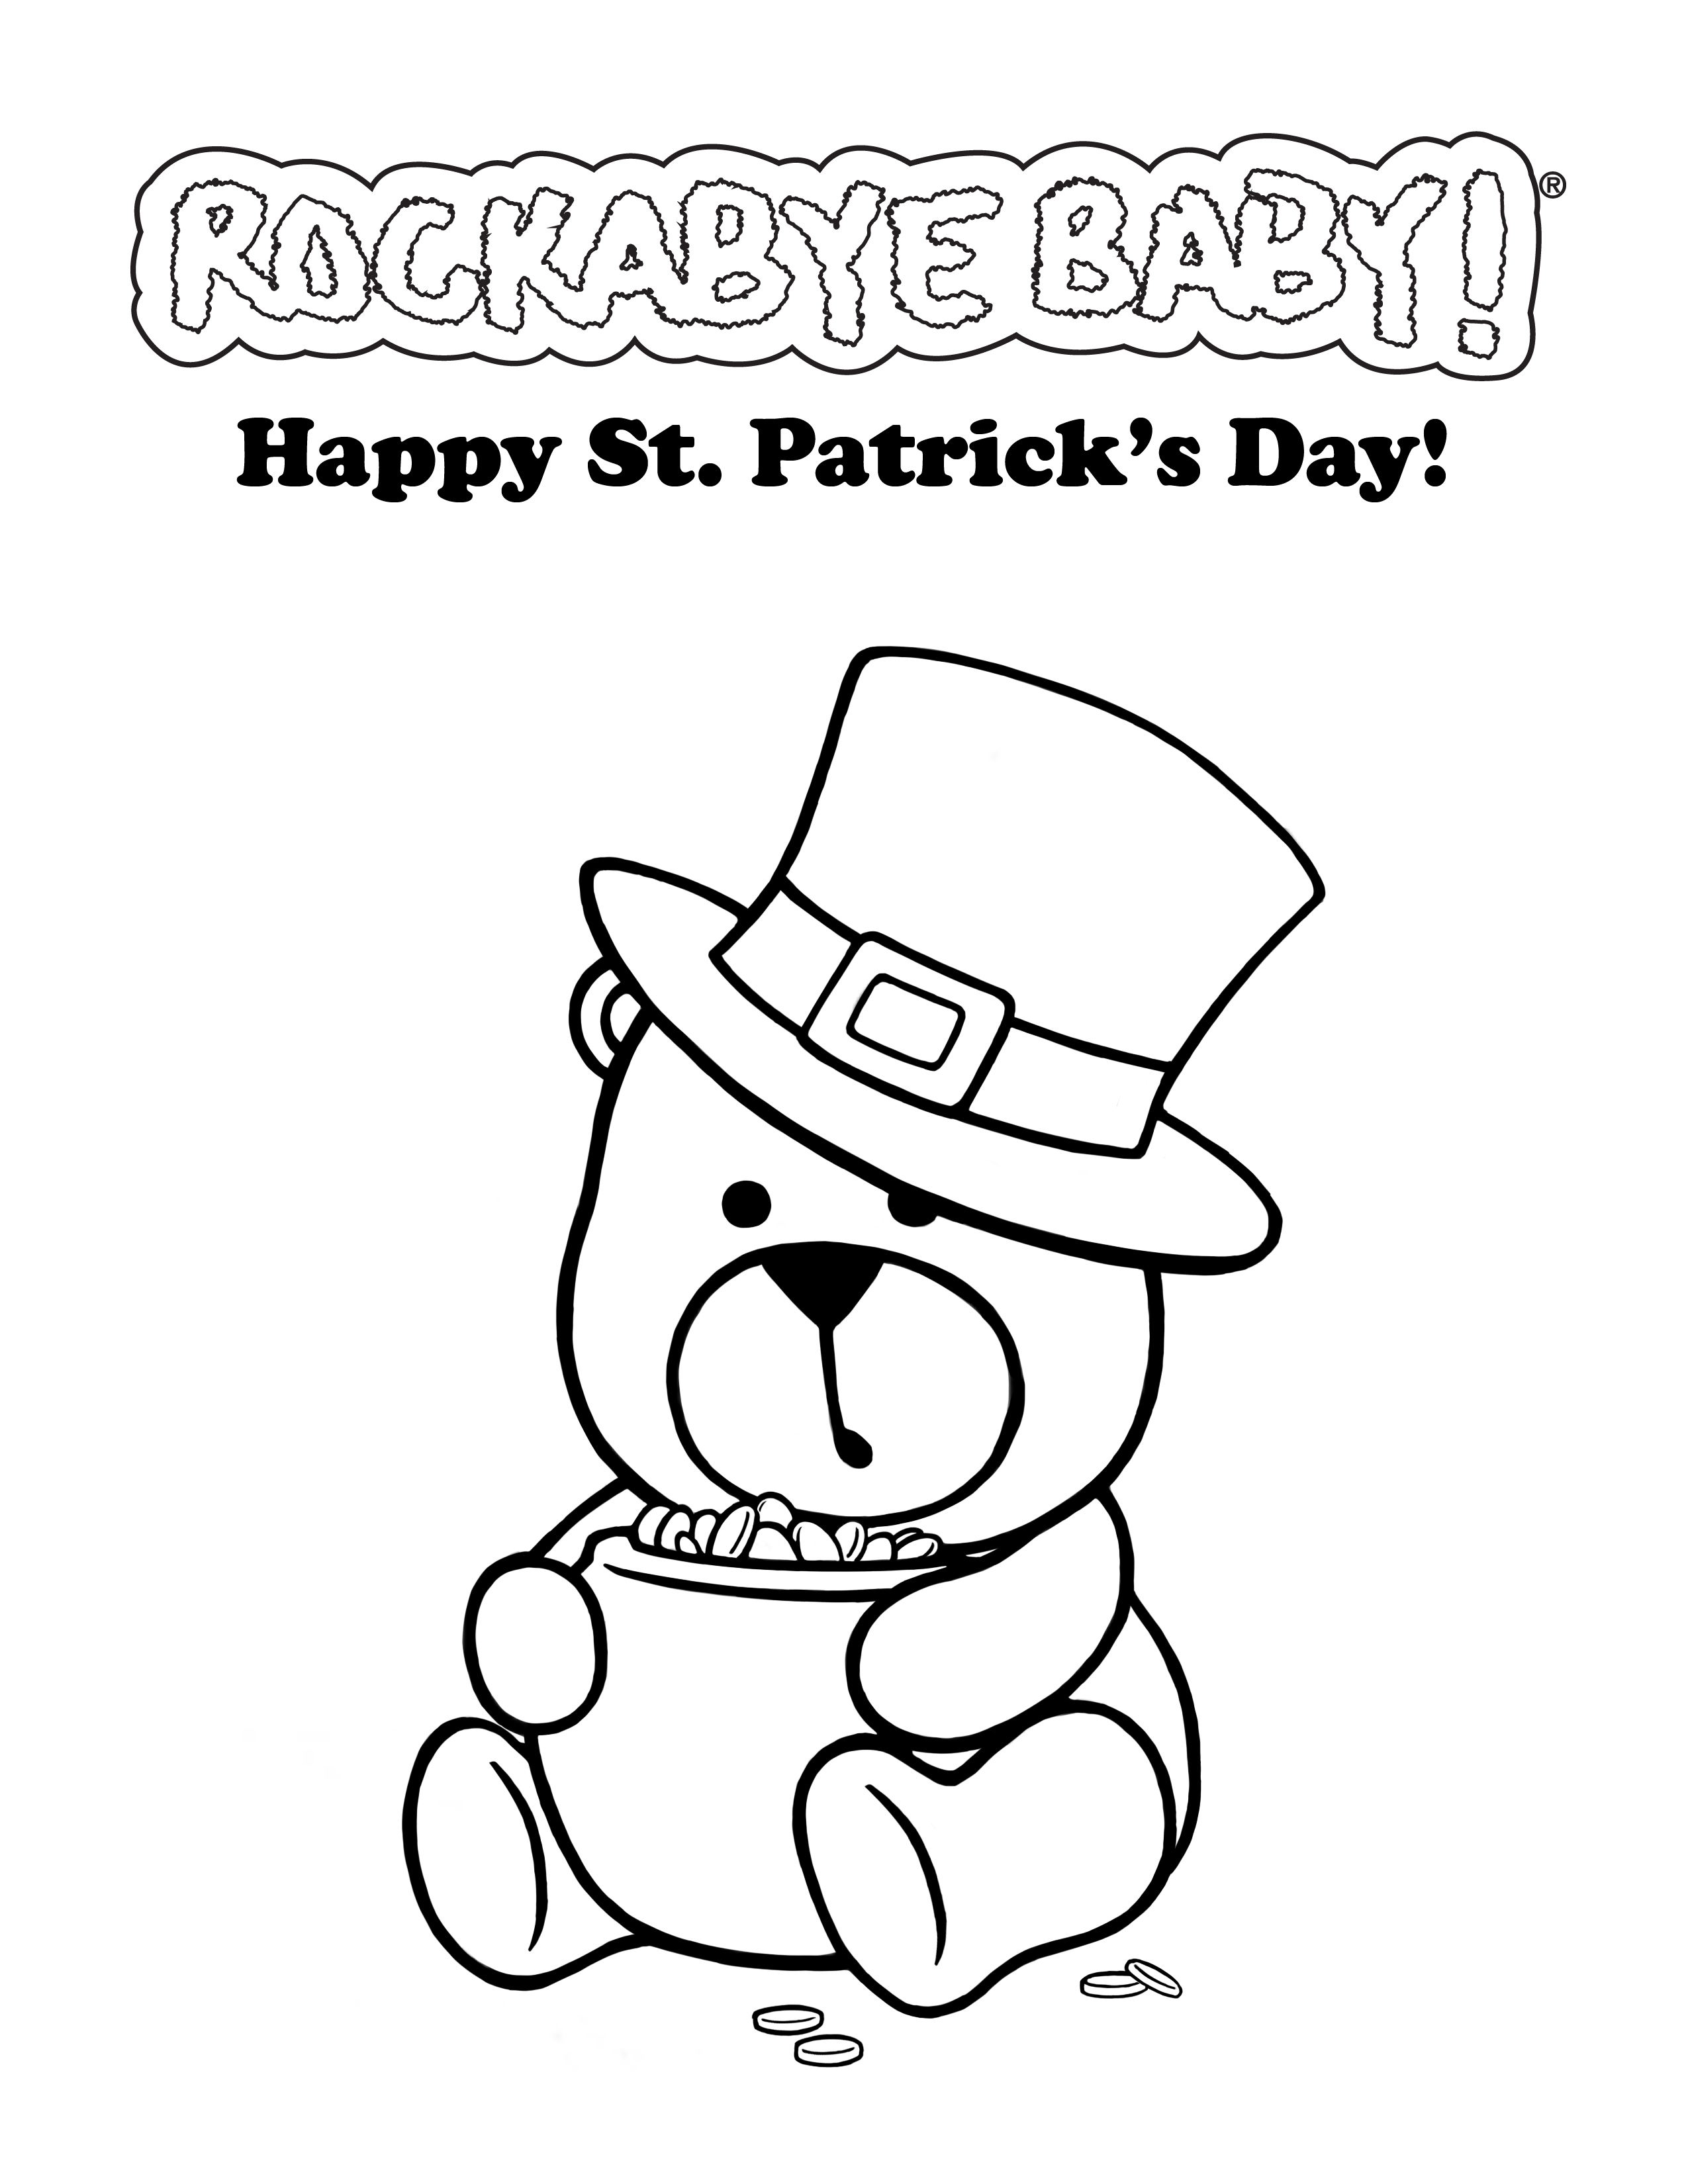 st patrick drawing at getdrawings com free for personal use st